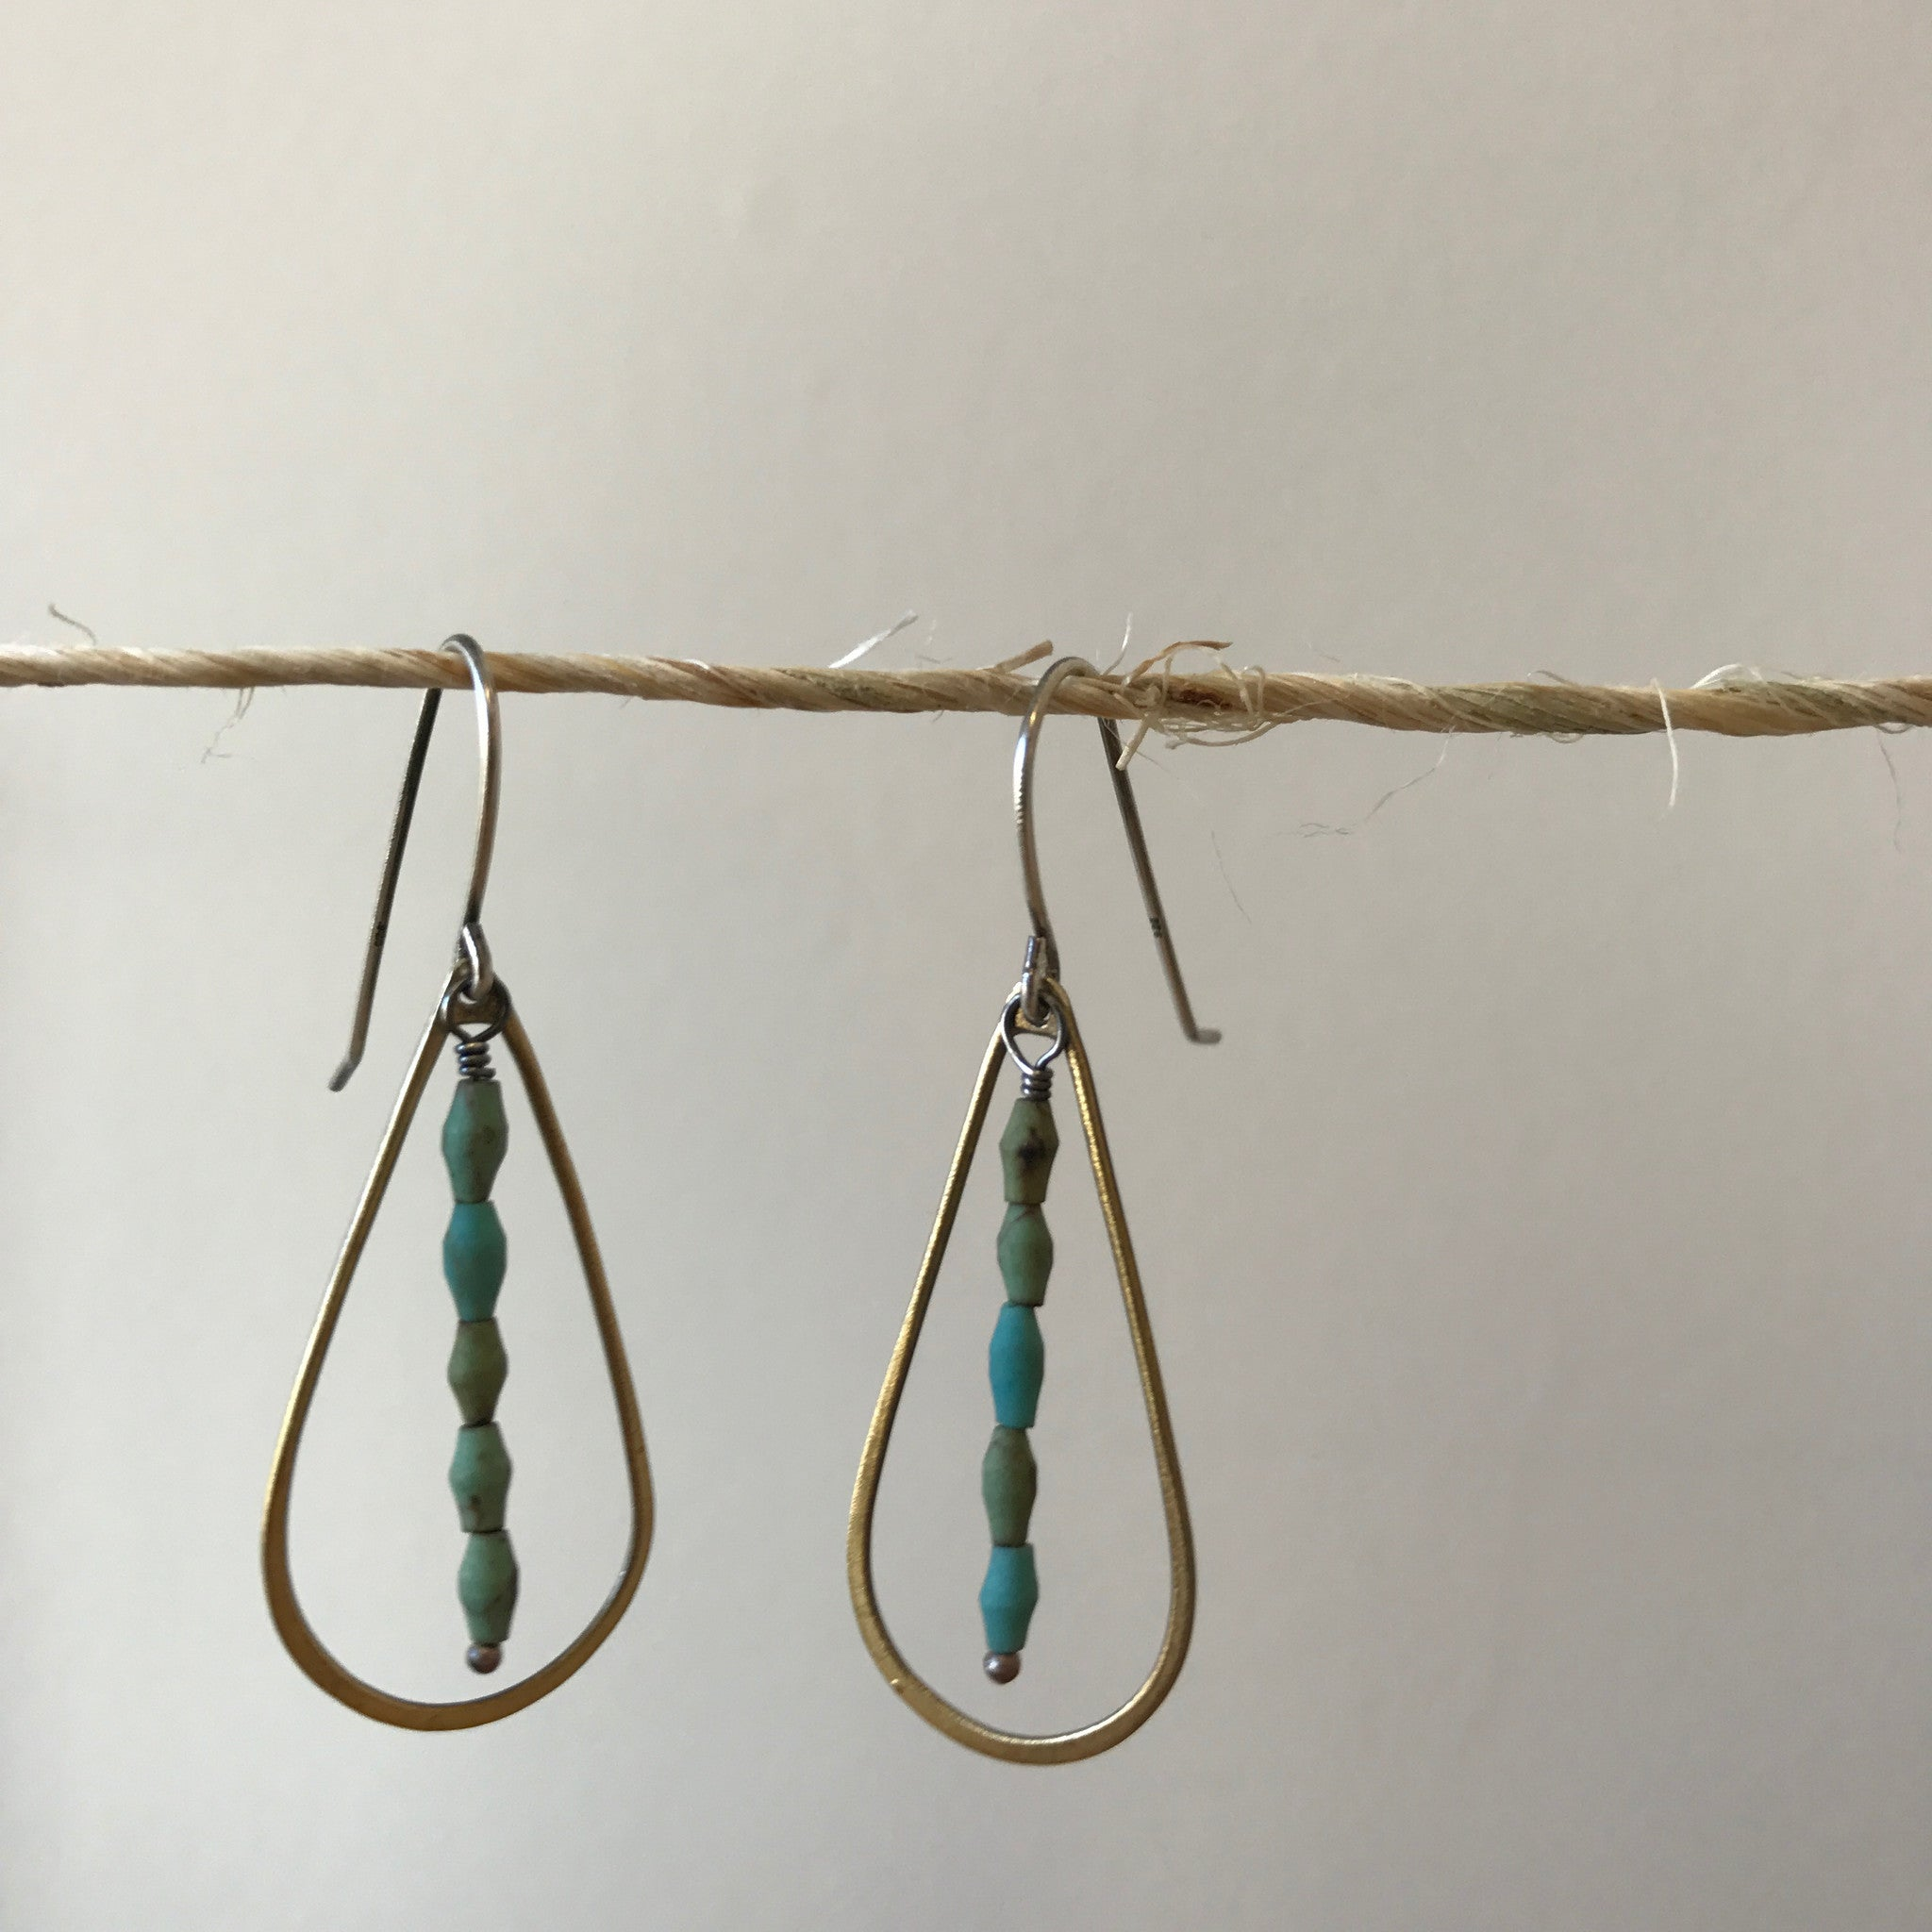 Sterling Silver and Brass Drop Earrings with Turquoise by Eric Silva